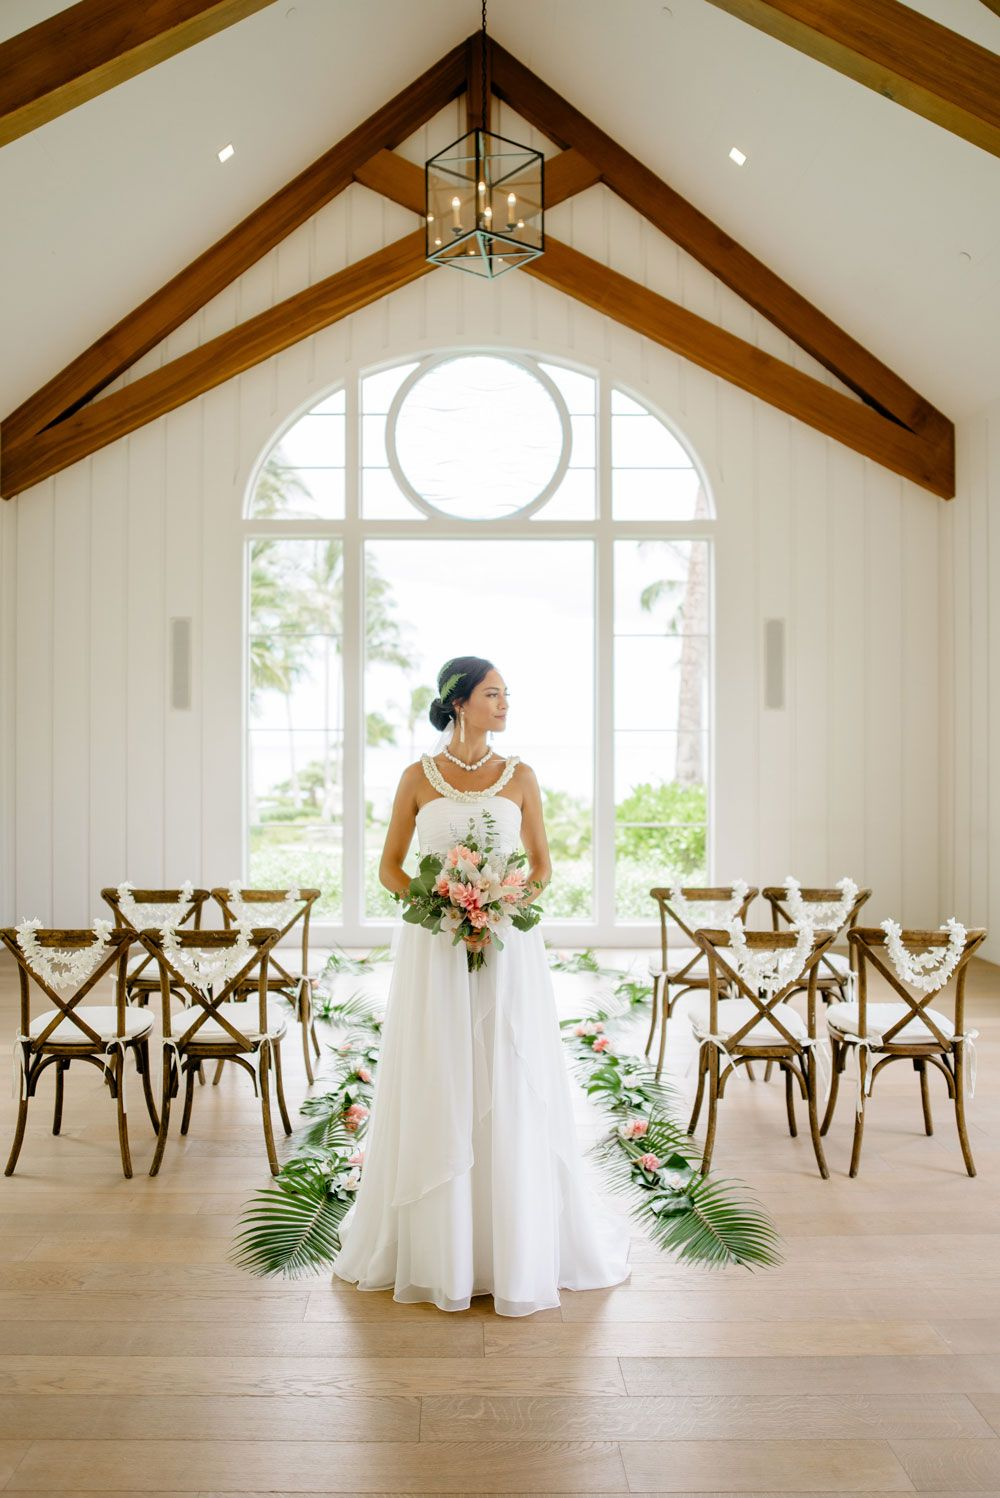 Best wedding venues hawaii with cheap wedding packages